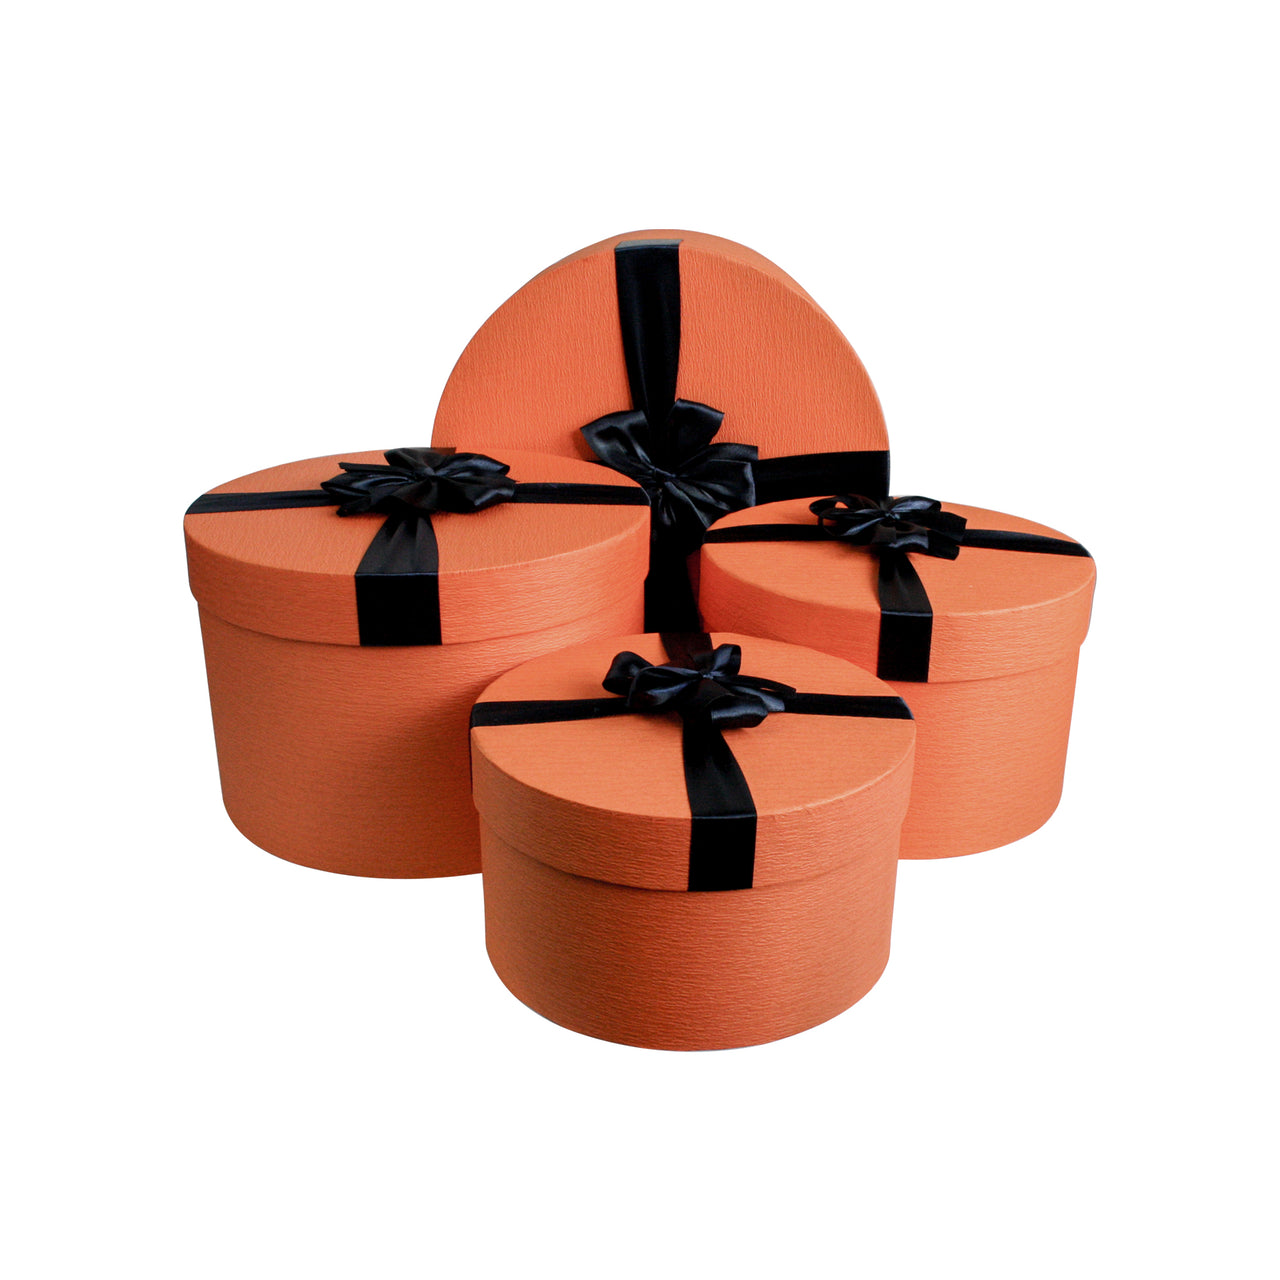 Orange and Dark Blue Cylindrical Gift Box - Set of 4